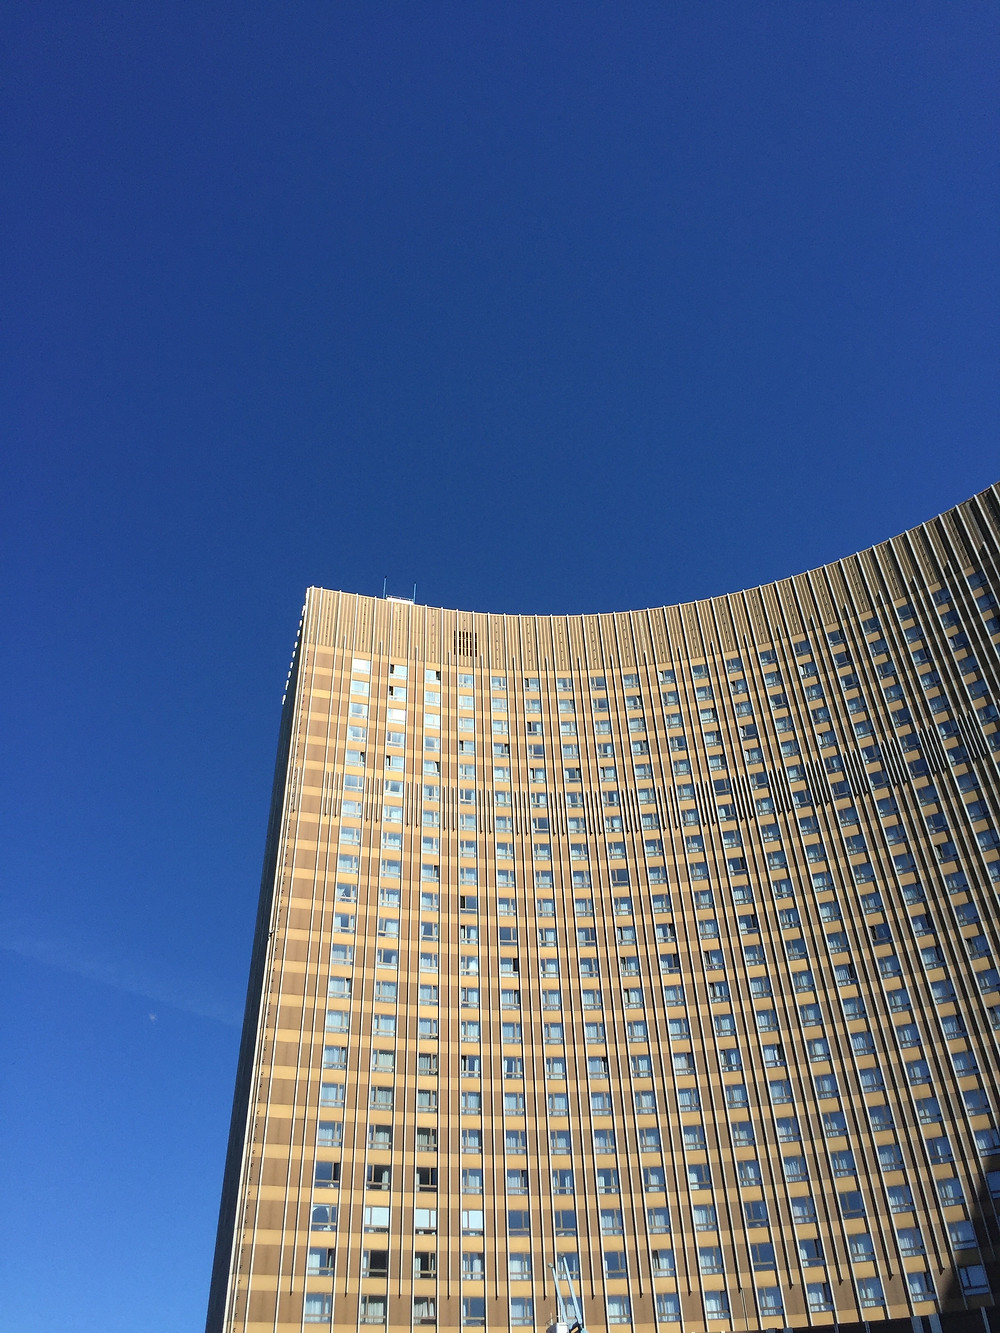 Although not as intimidating as many of the structures for which brutalism was named, the Hotel Cosmos in Moscow still makes a big impression on anyone who wanders into its shadow.